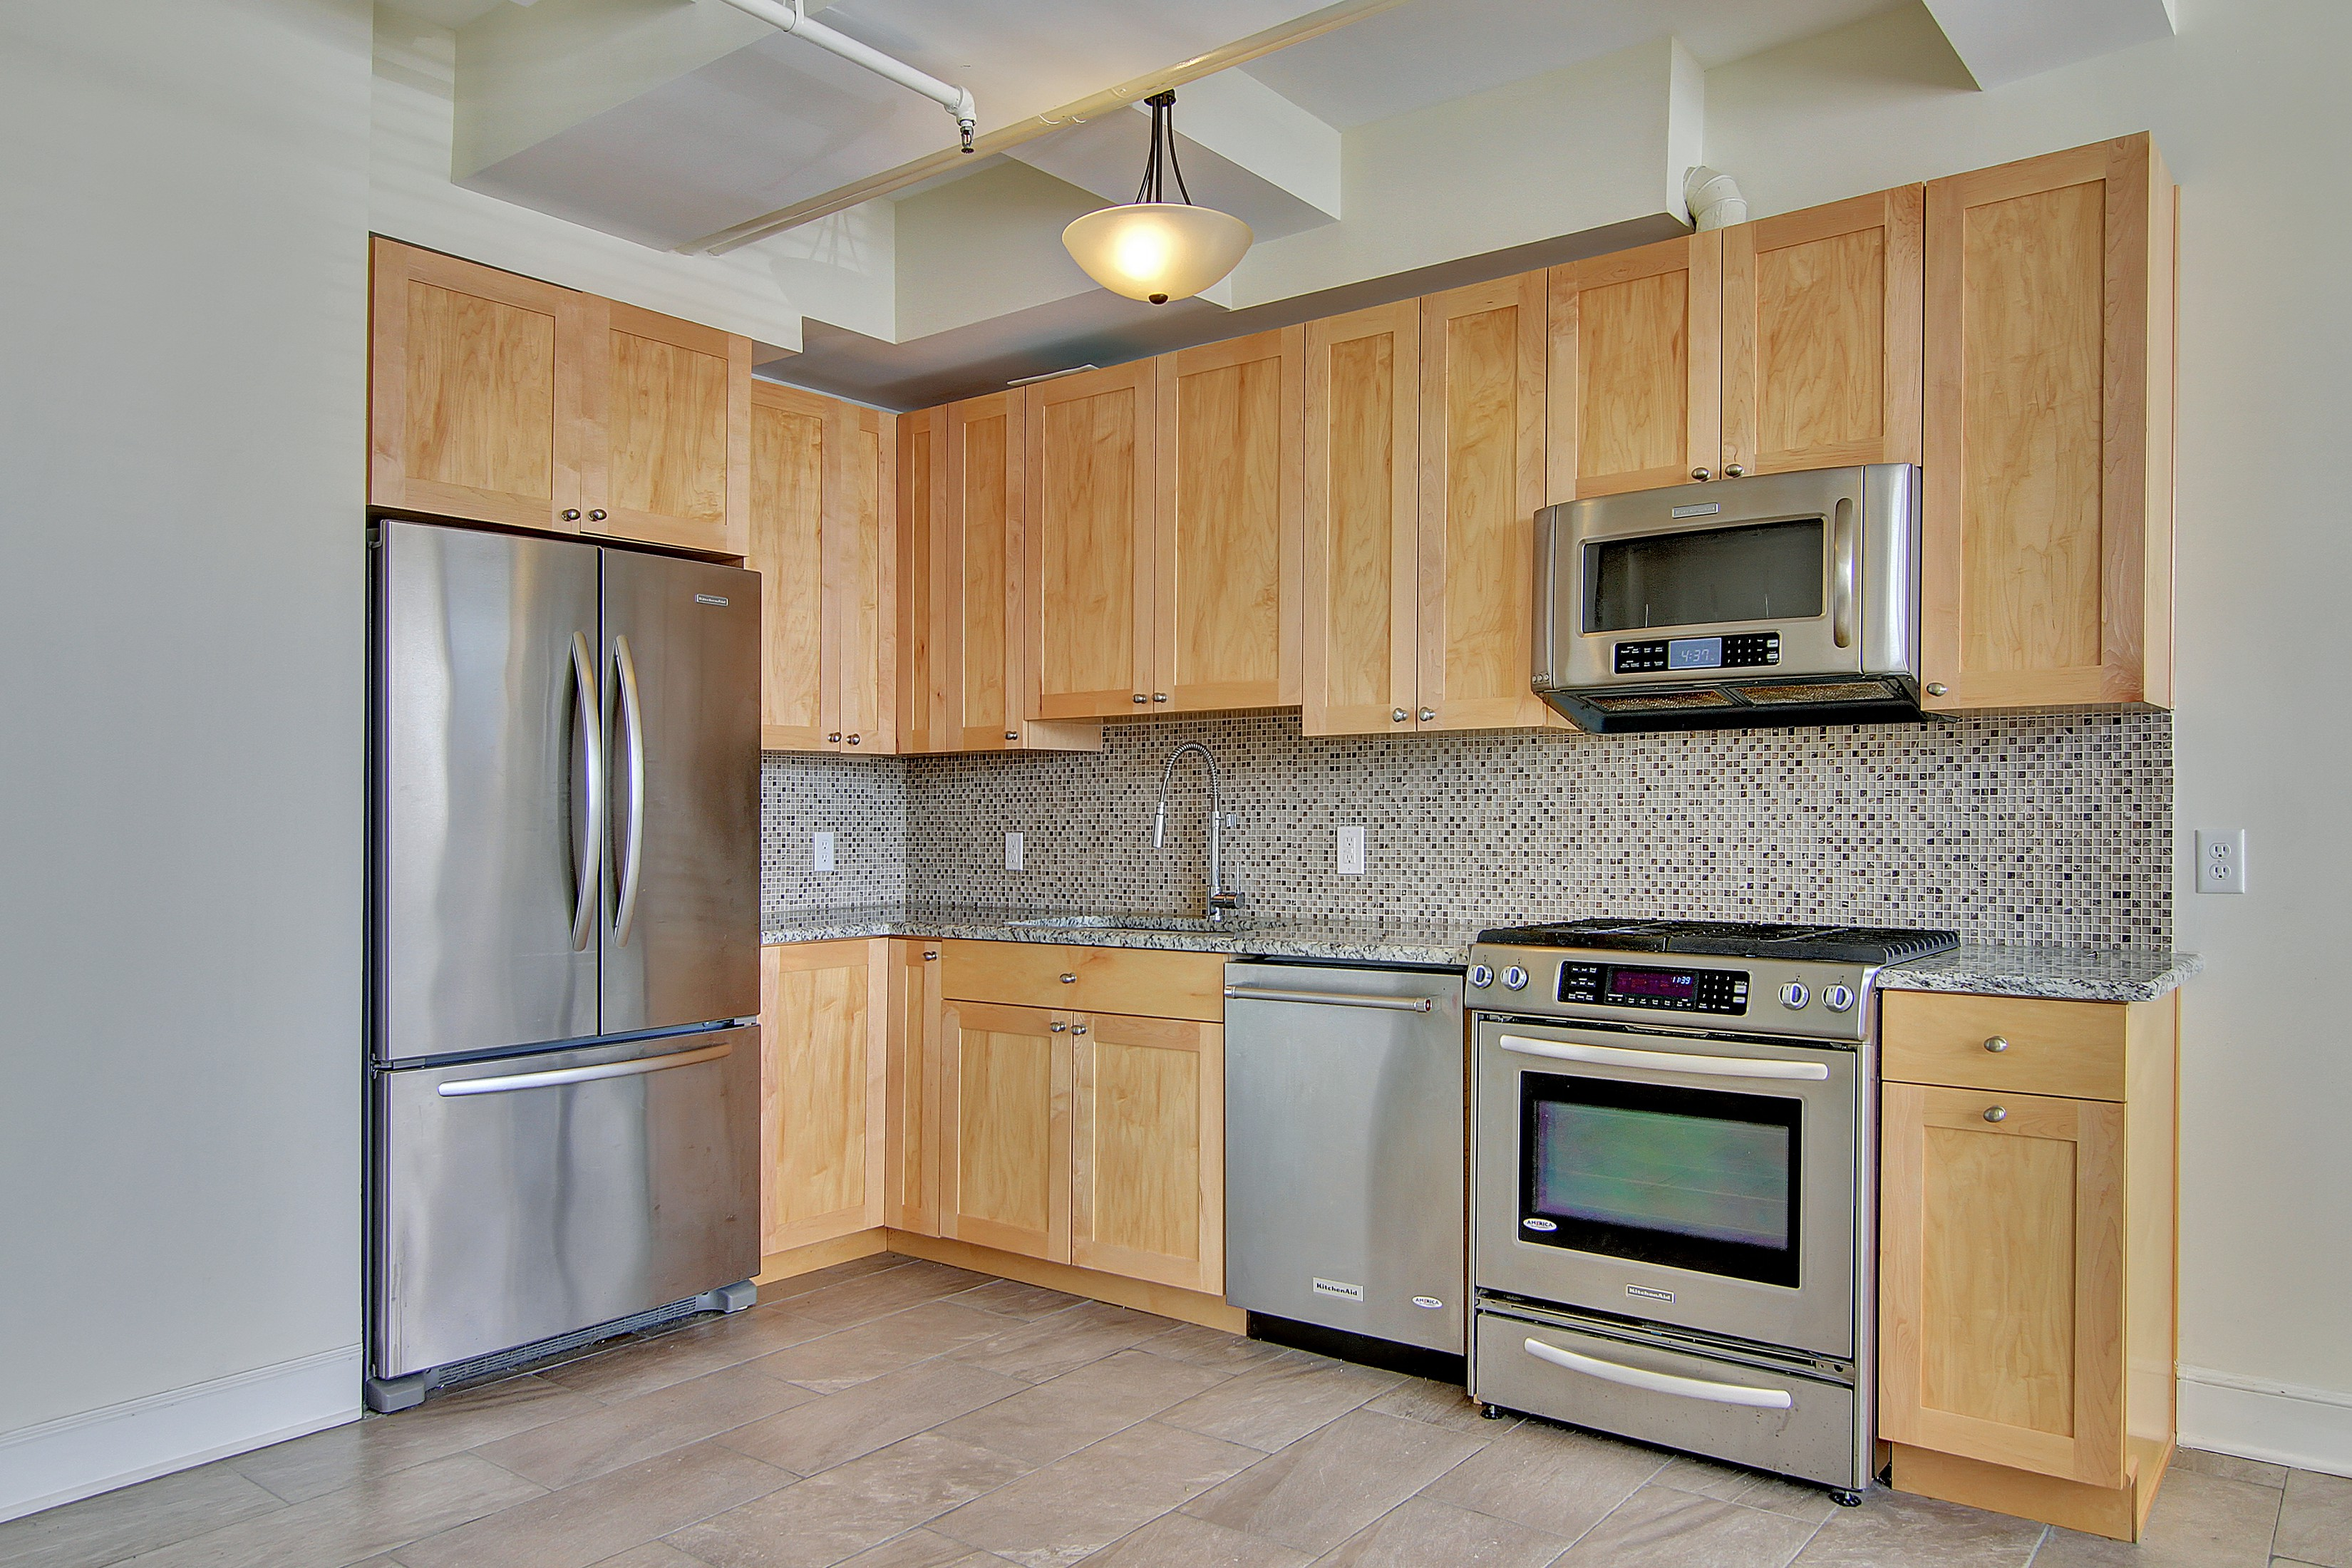 Condominium for Rent at LARGE OPEN CONCEPT ONE BEROOM WITH GREAT NATURAL LIGHT AND CITY VIEWS. PARKING I 300 Communipaw Ave #026 Jersey City, 07304 United States